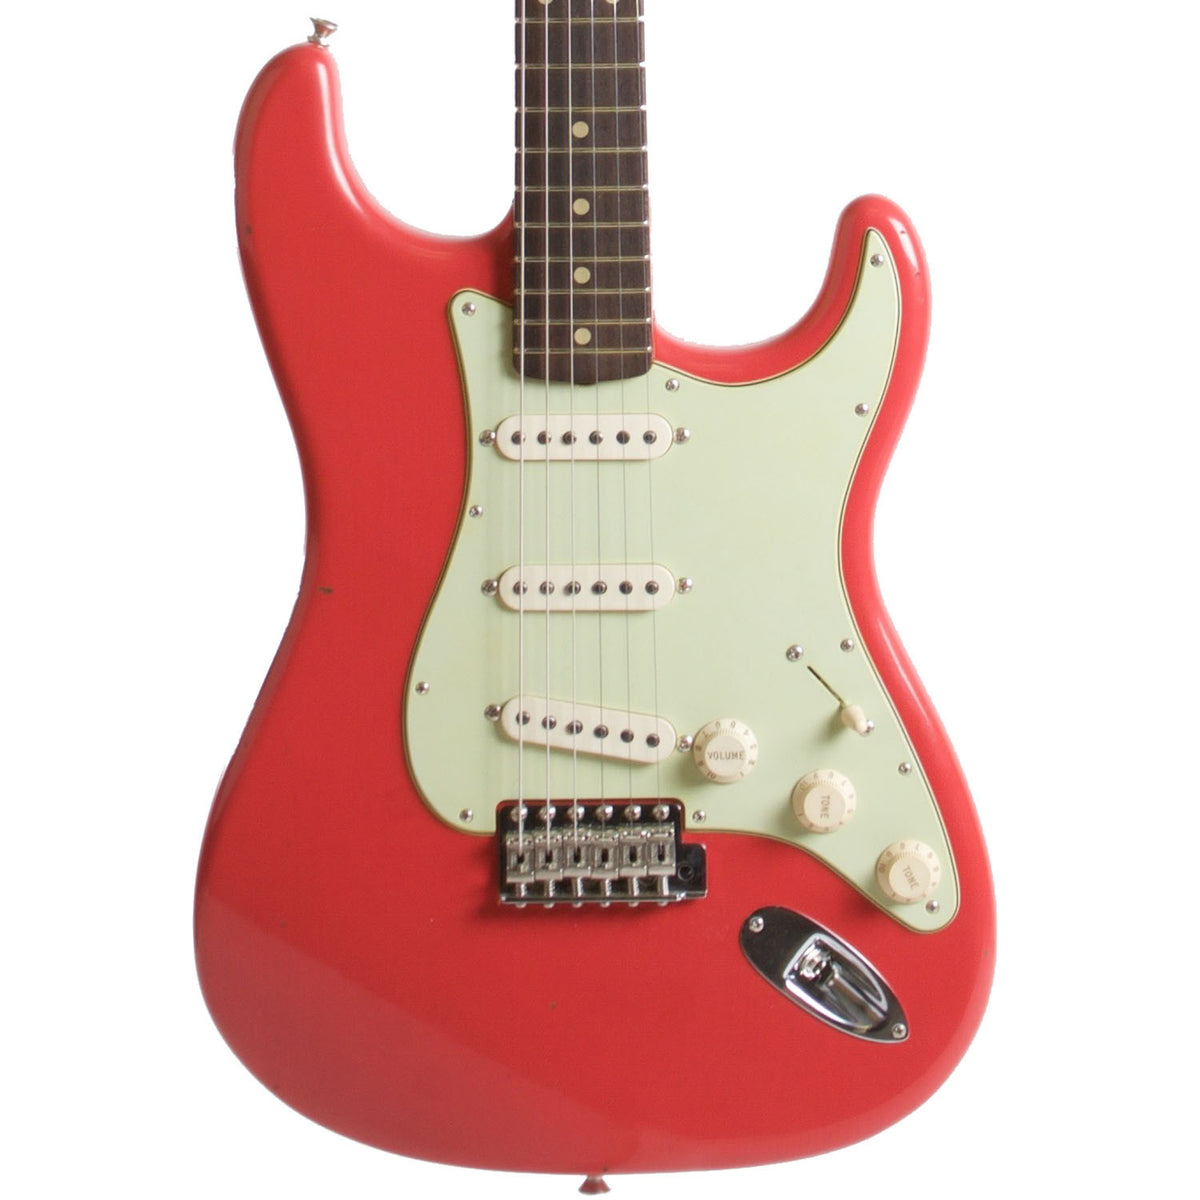 2015 Fender Custom Shop Rocking Dog '62 Stratocaster Fiesta Red - Garrett Park Guitars  - 2